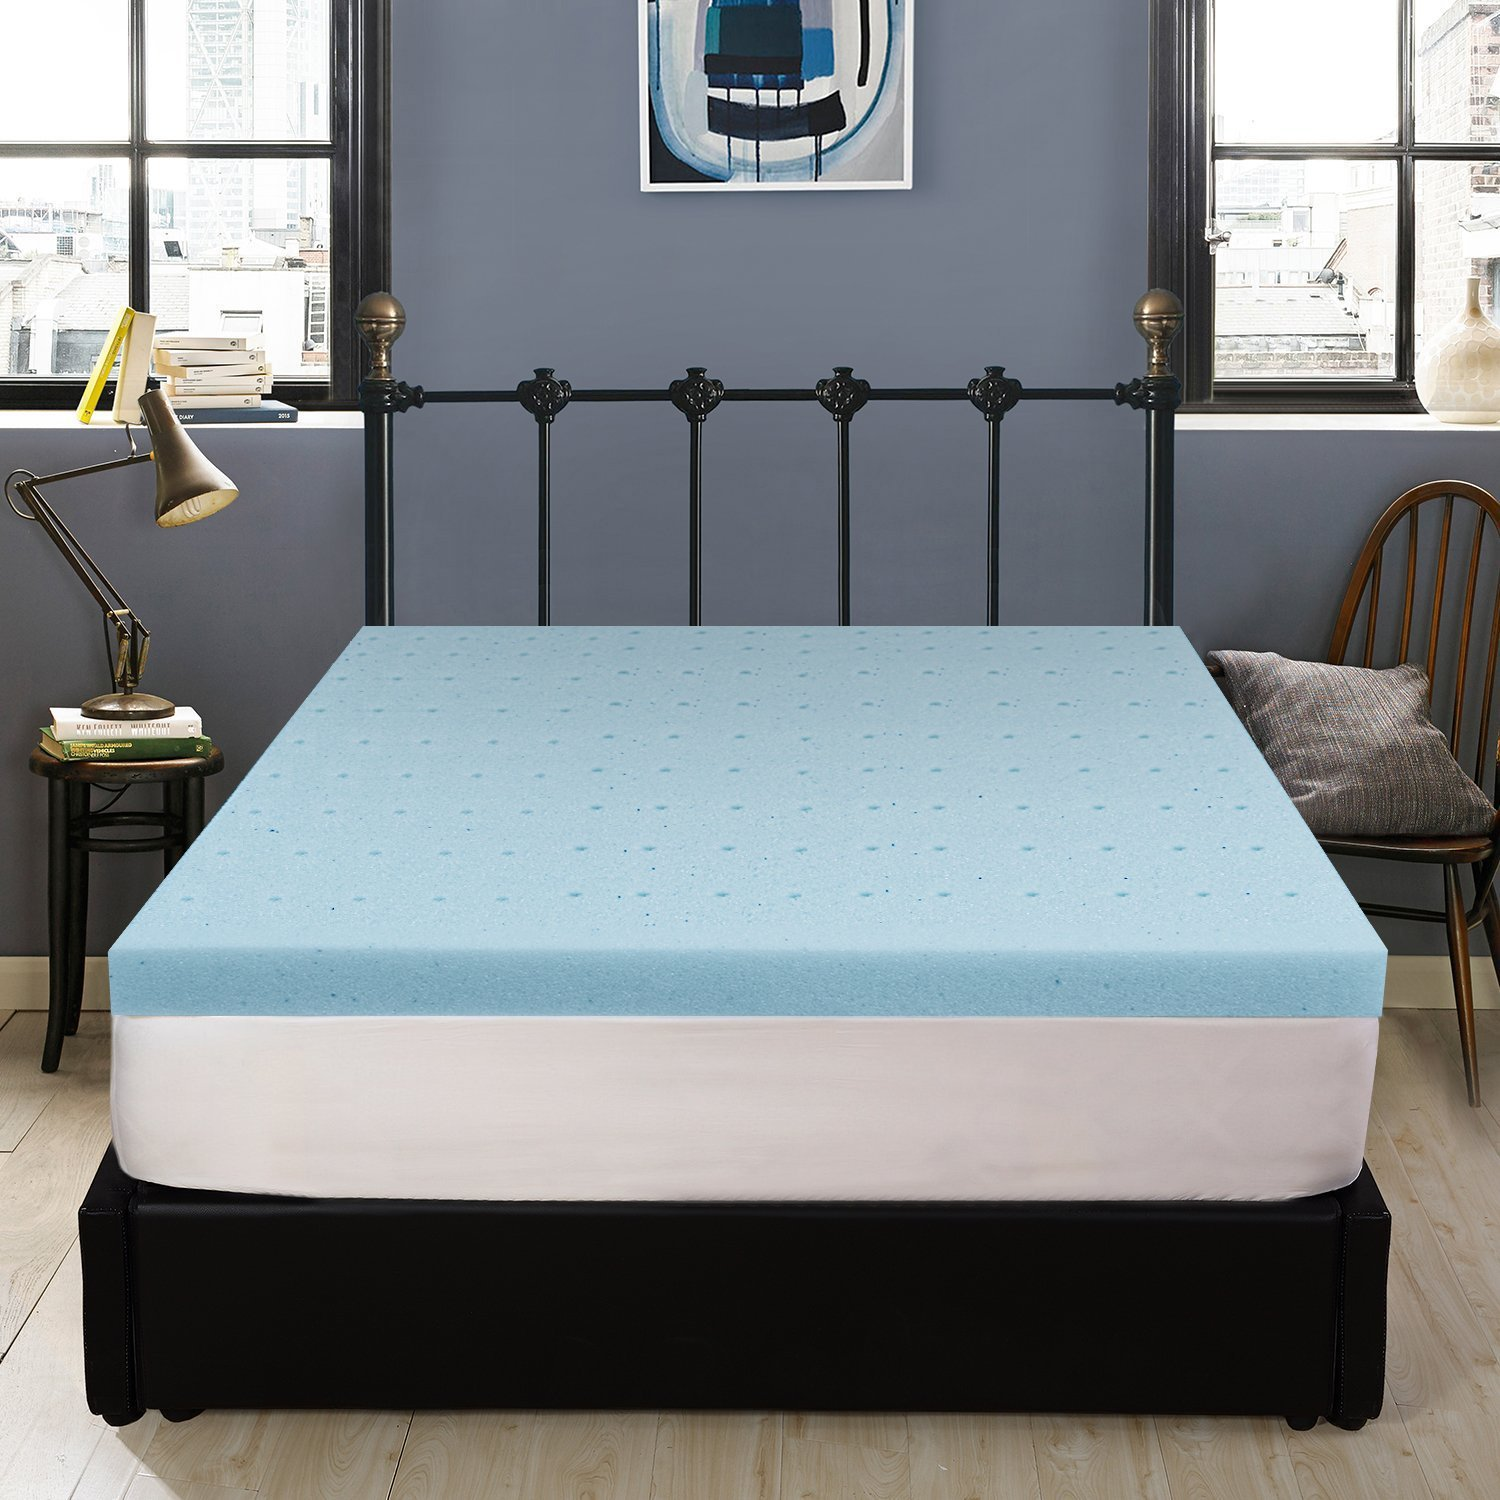 Polar Sleep 2.5 Inch Gel Memory Foam Topper, Ultra-Premium Gel-Infused Memory Foam Topper For Cooling, Air Cell Technology Increases Airflow, Queen Size